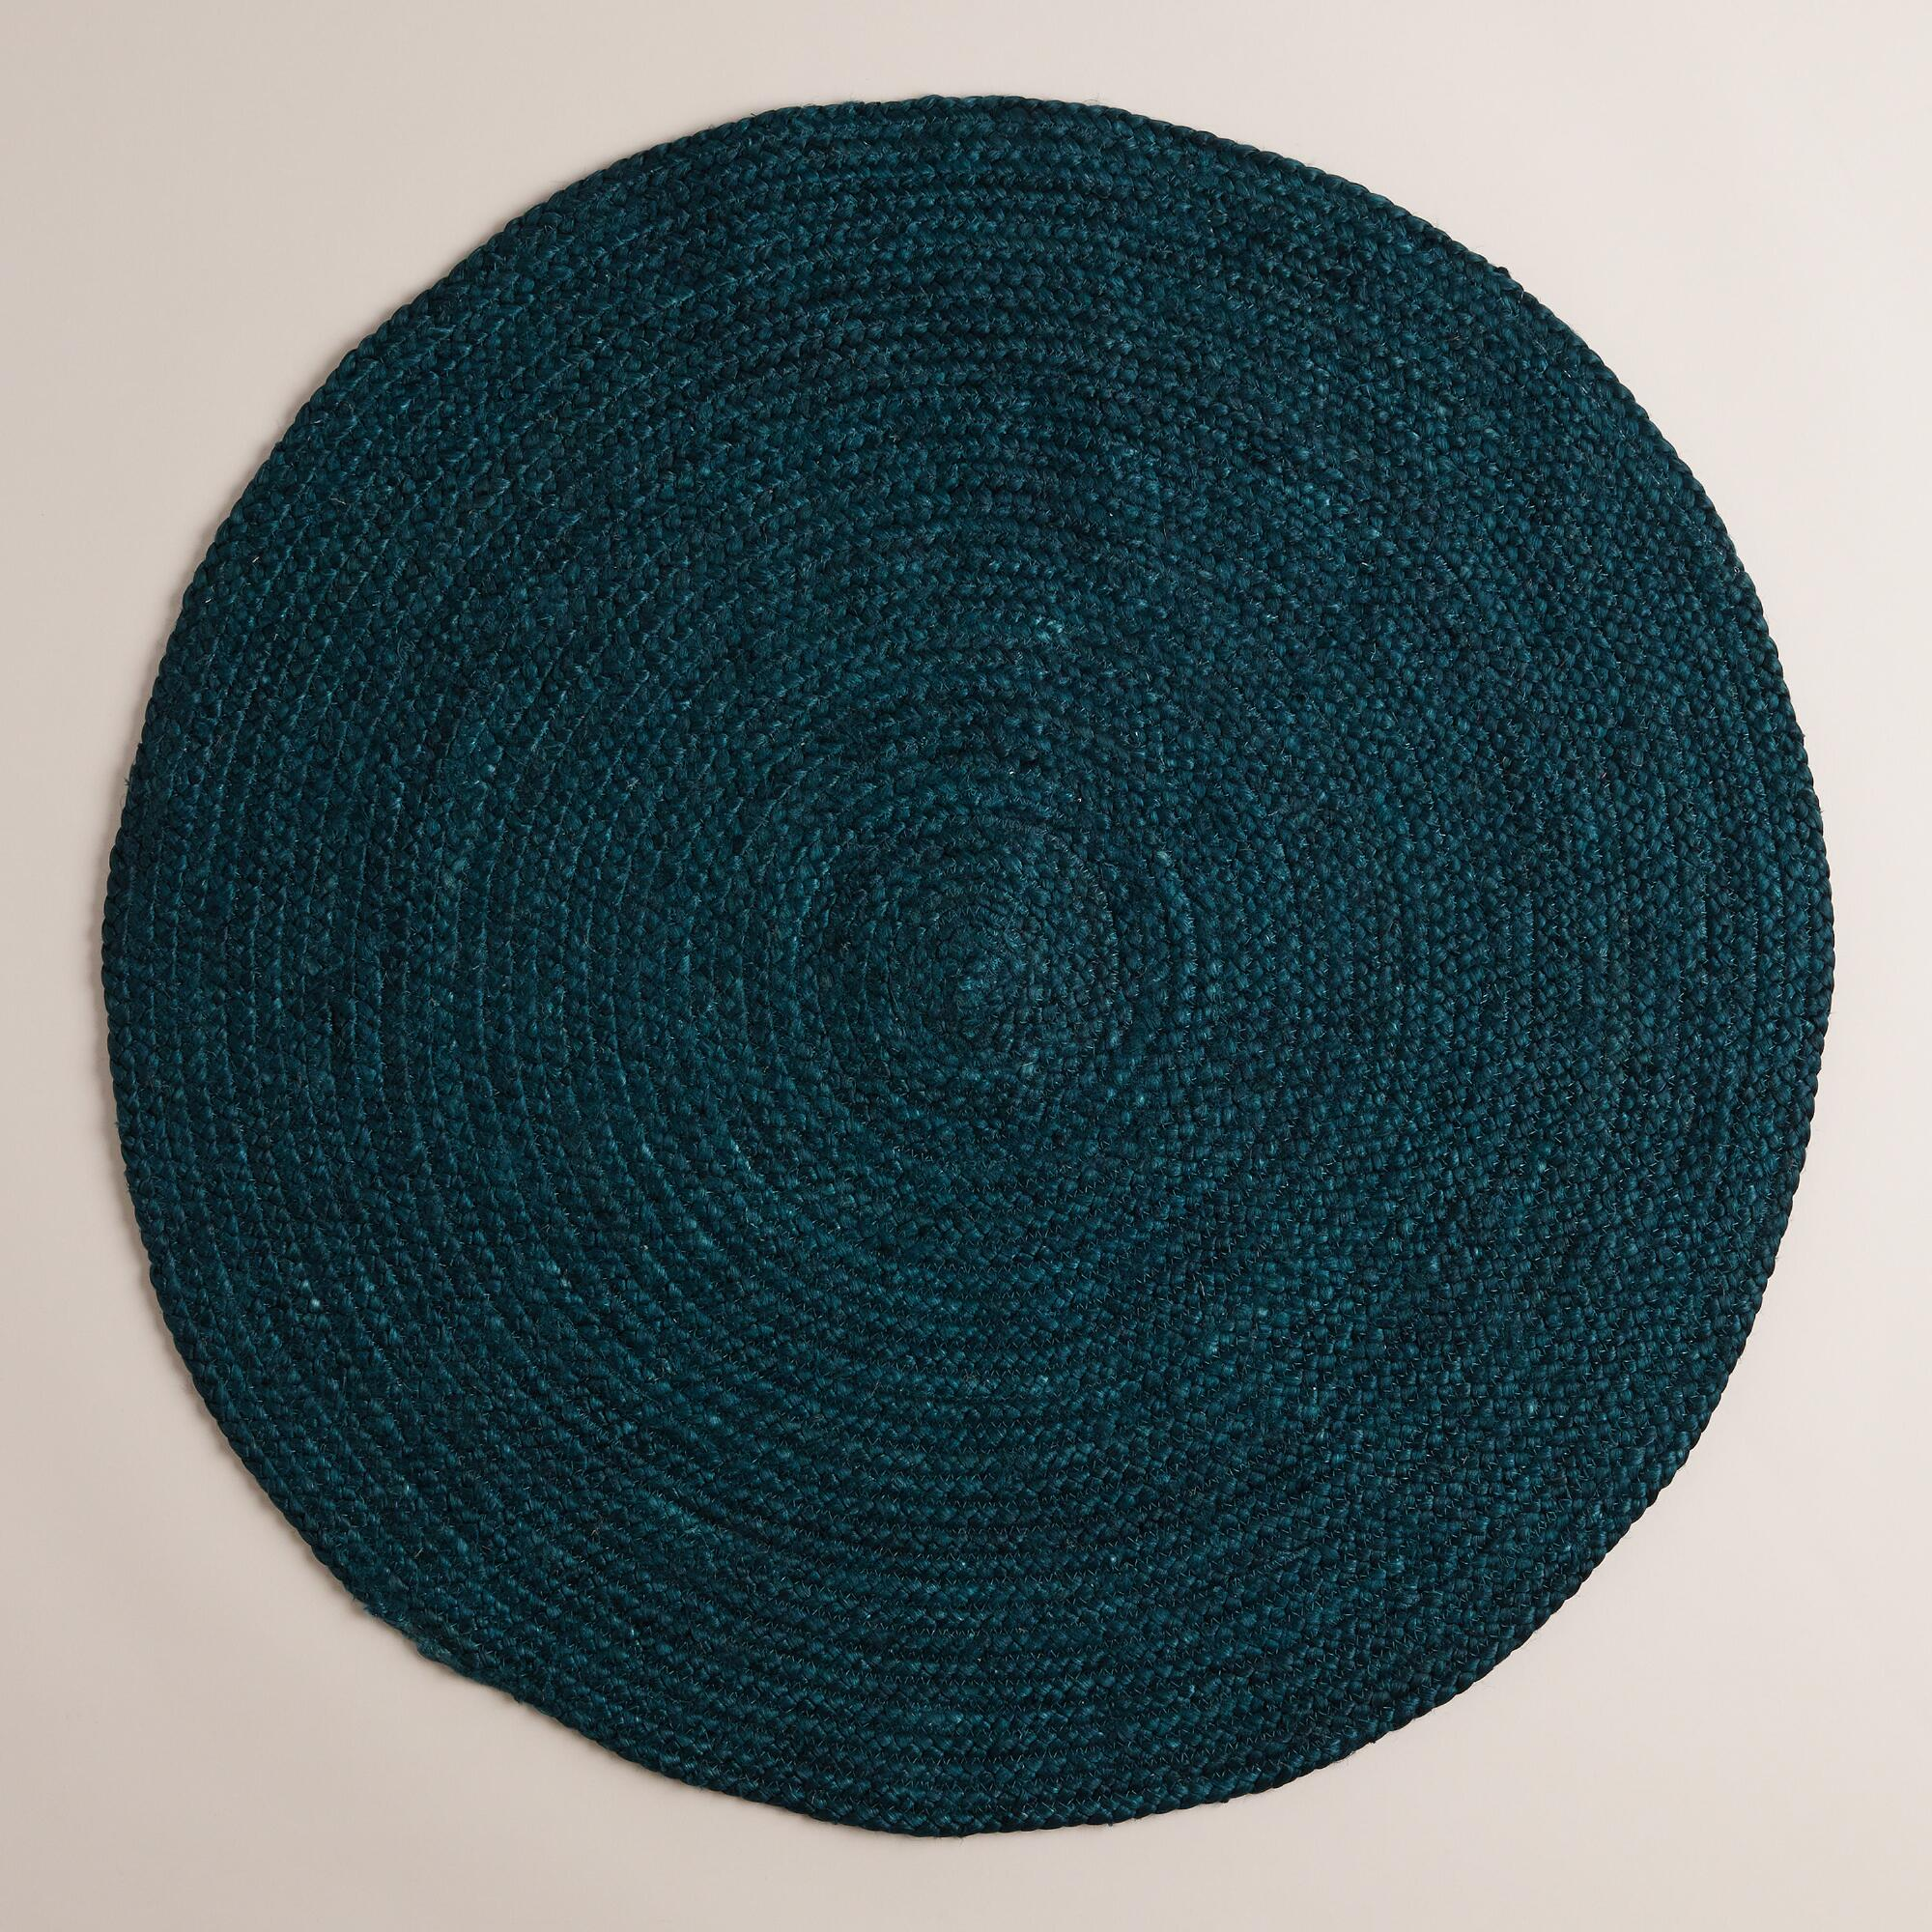 Teal Woven Rag Rug: Teal Round Braided Jute Area Rug